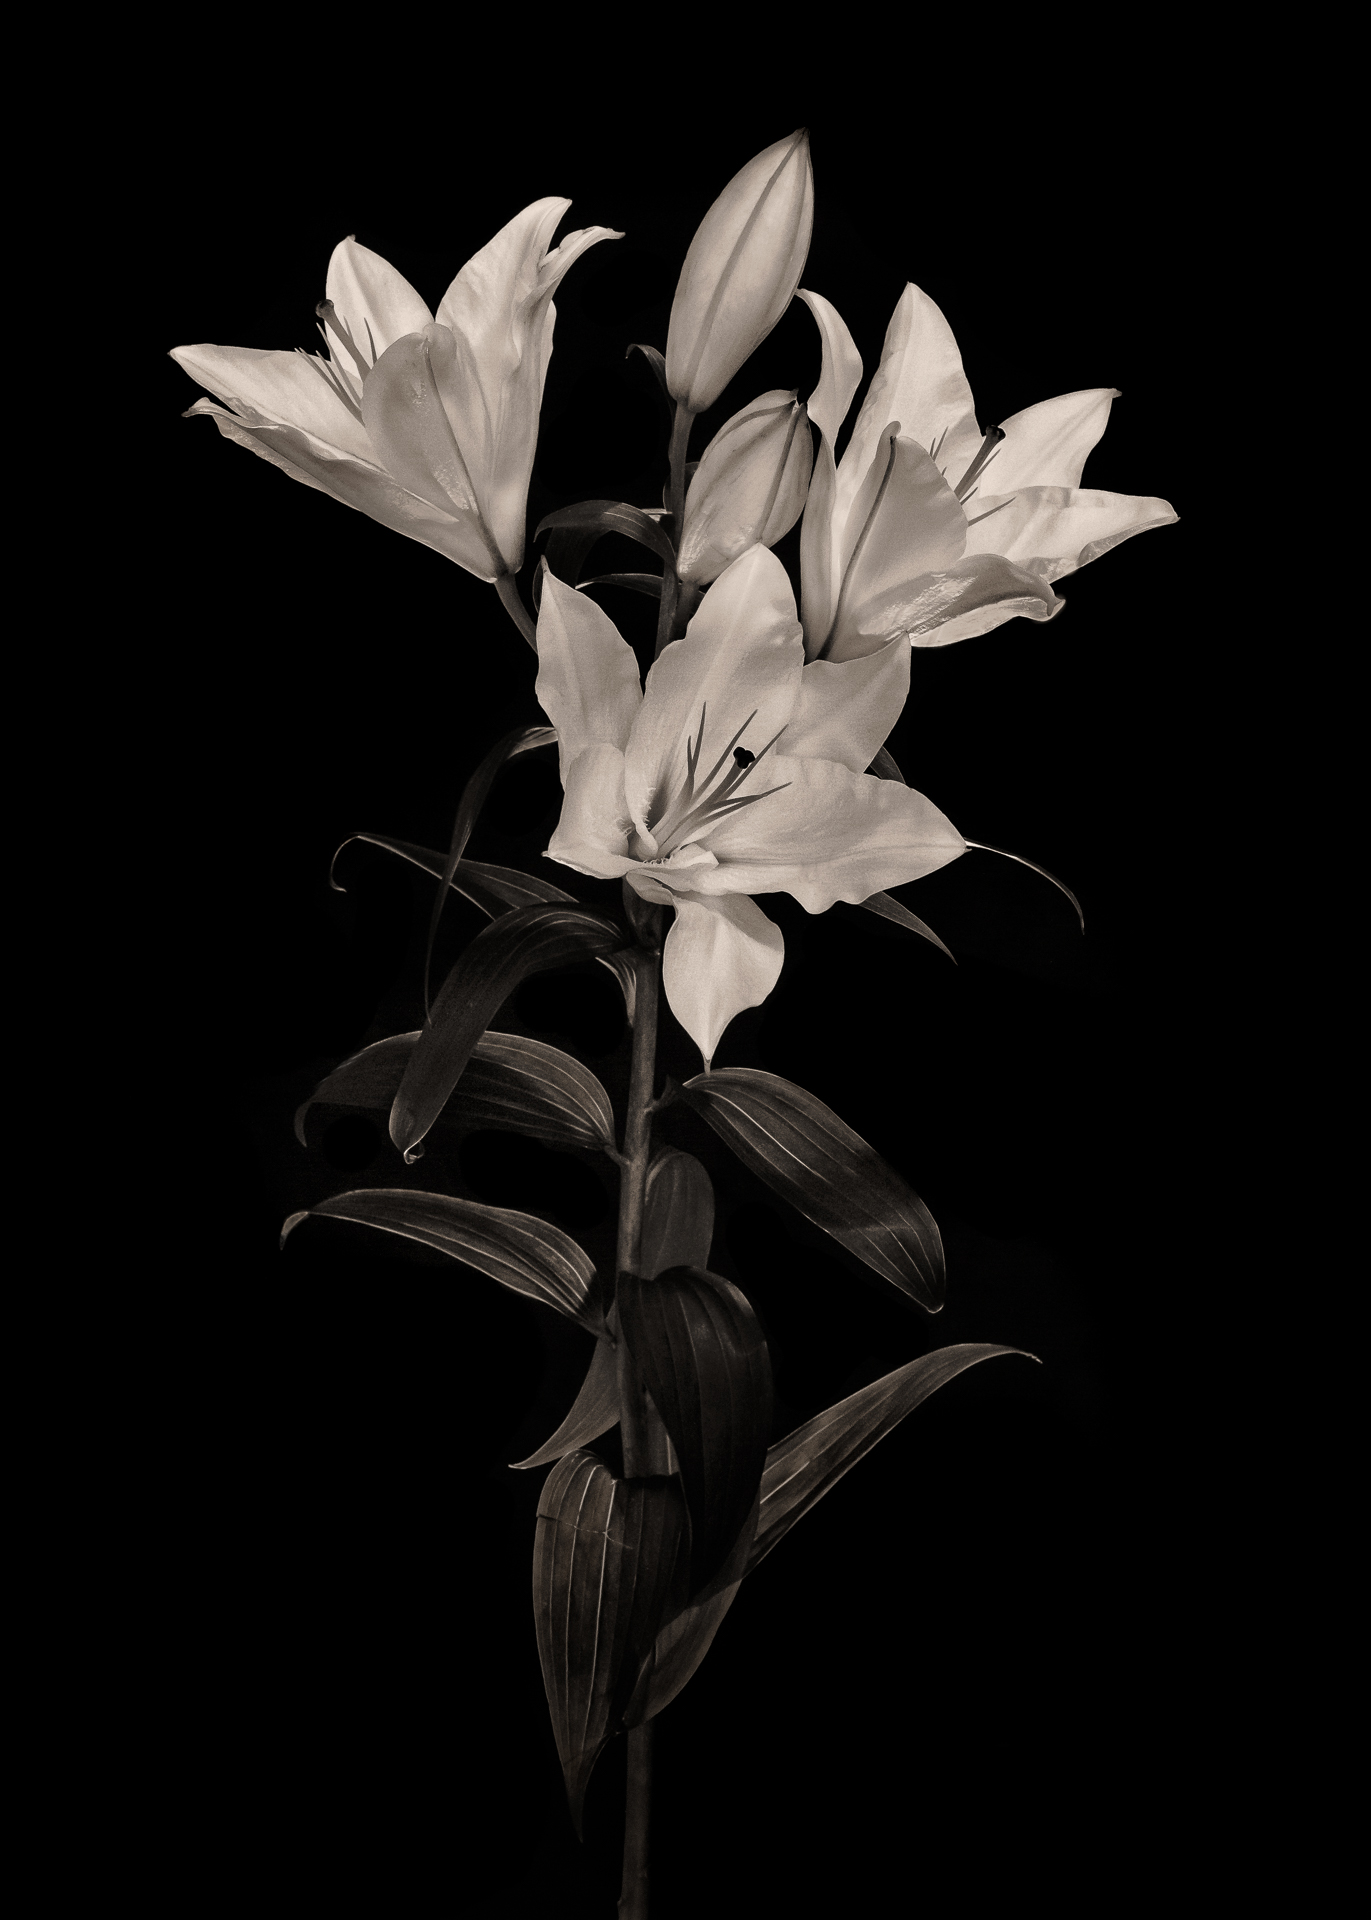 Lillies (Monochrome)